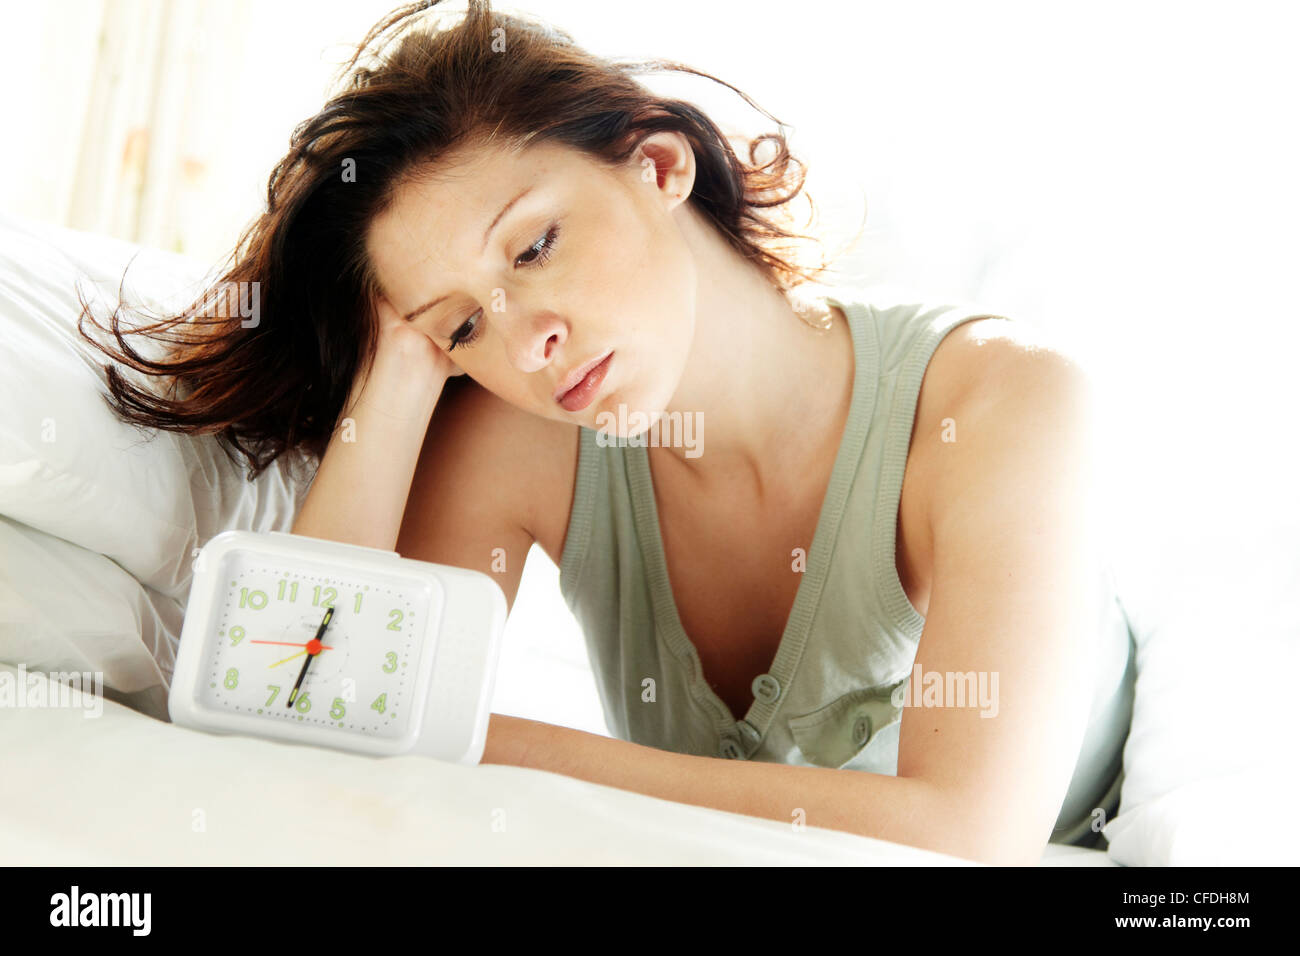 woman looking at clock stock photo 43939524 alamy